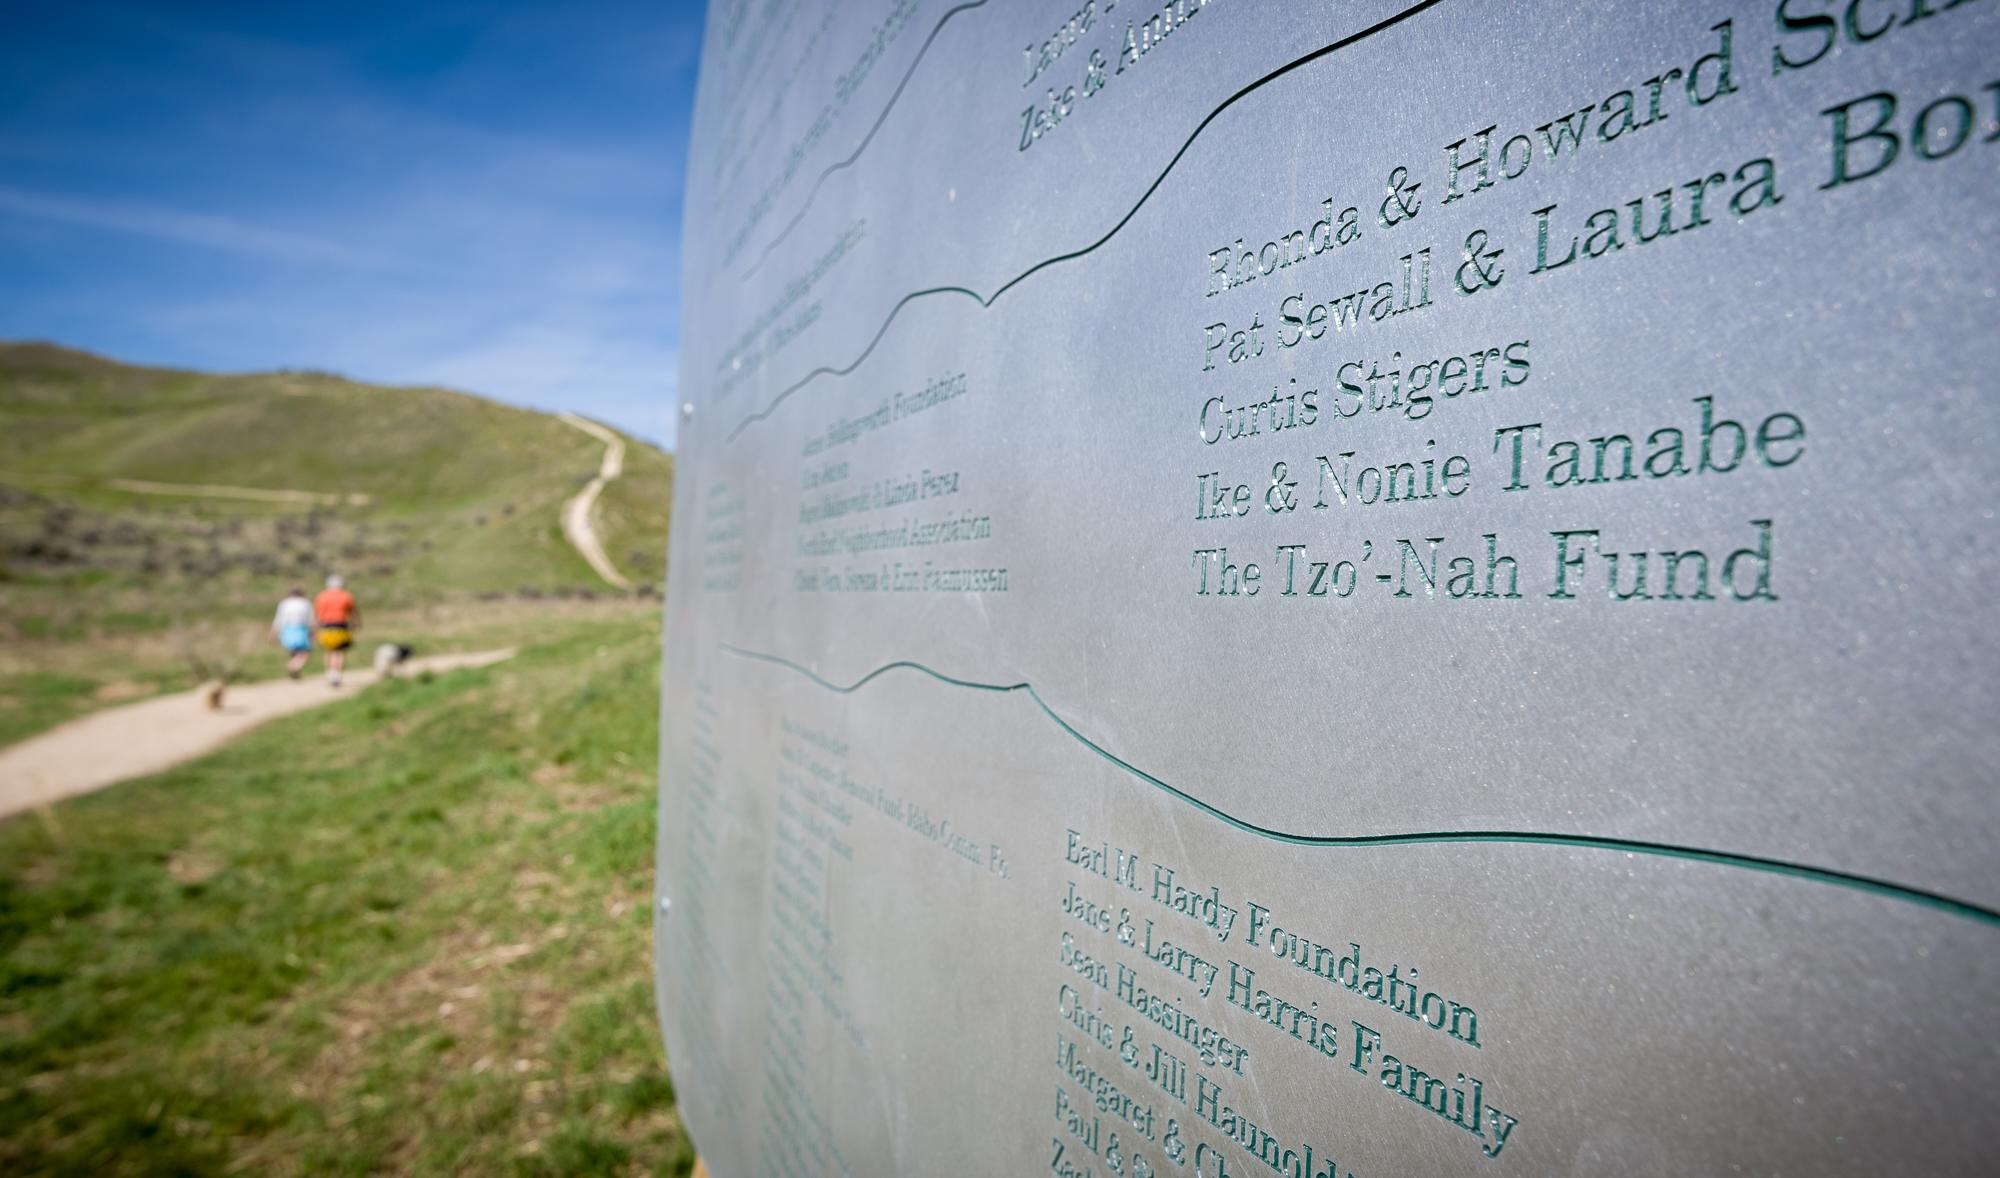 Tzo-nah fund contributed to the land trust of the treasure valley for the Harrison hollow nature area and hillside to hollow reserve